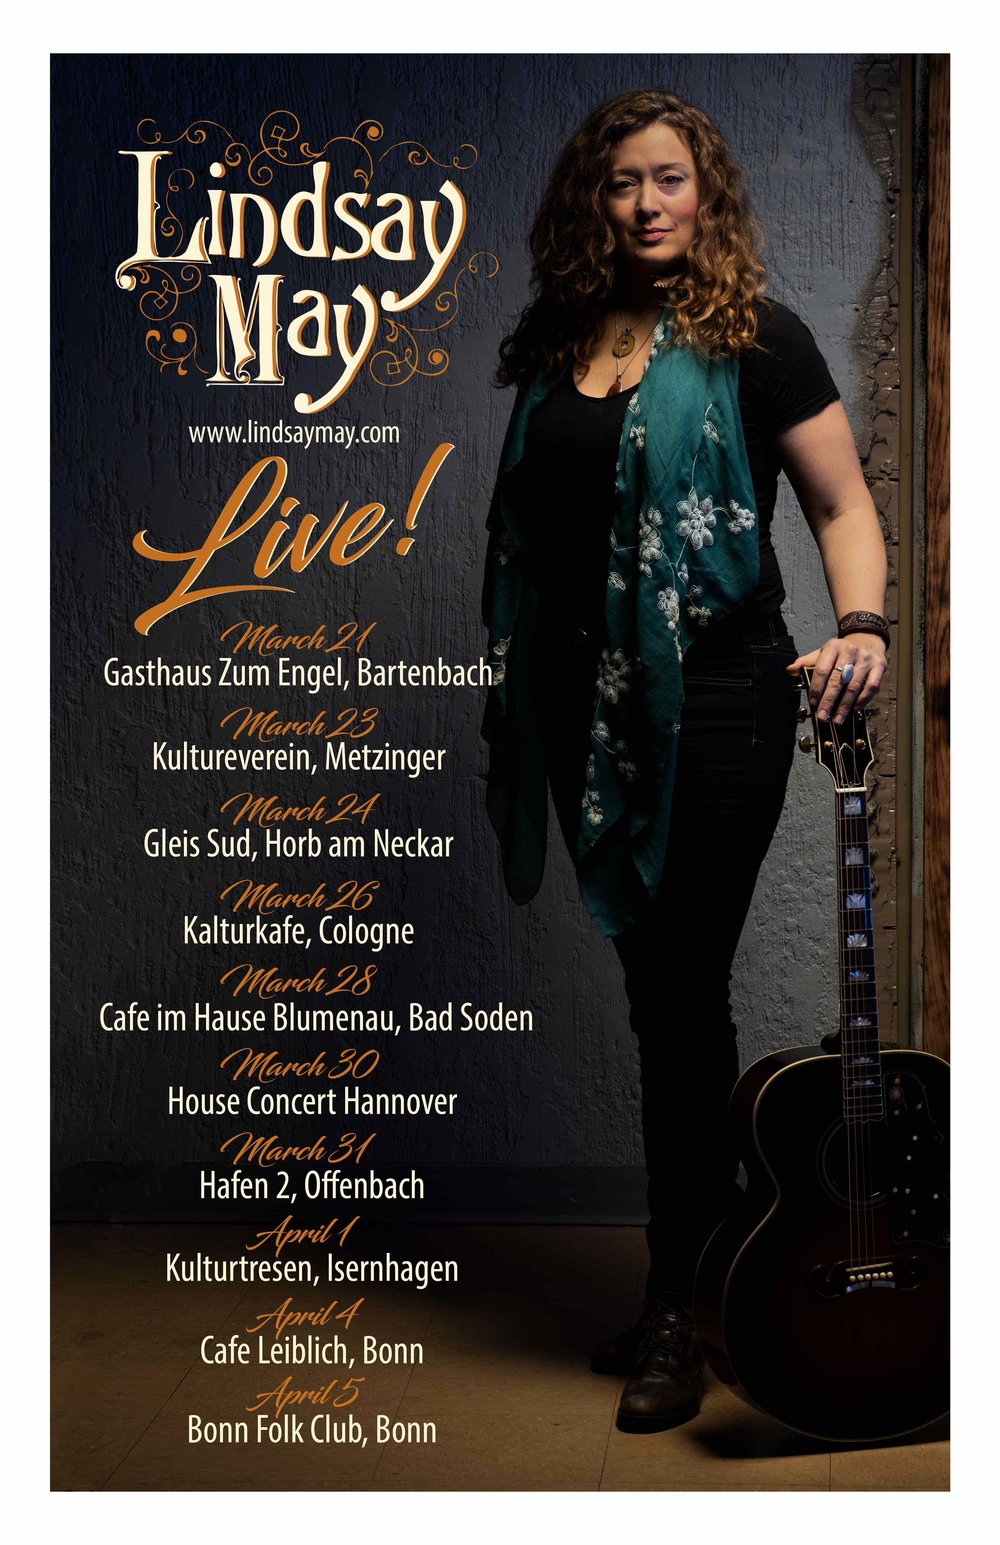 Lindsay May March 2019 tour poster small.jpg